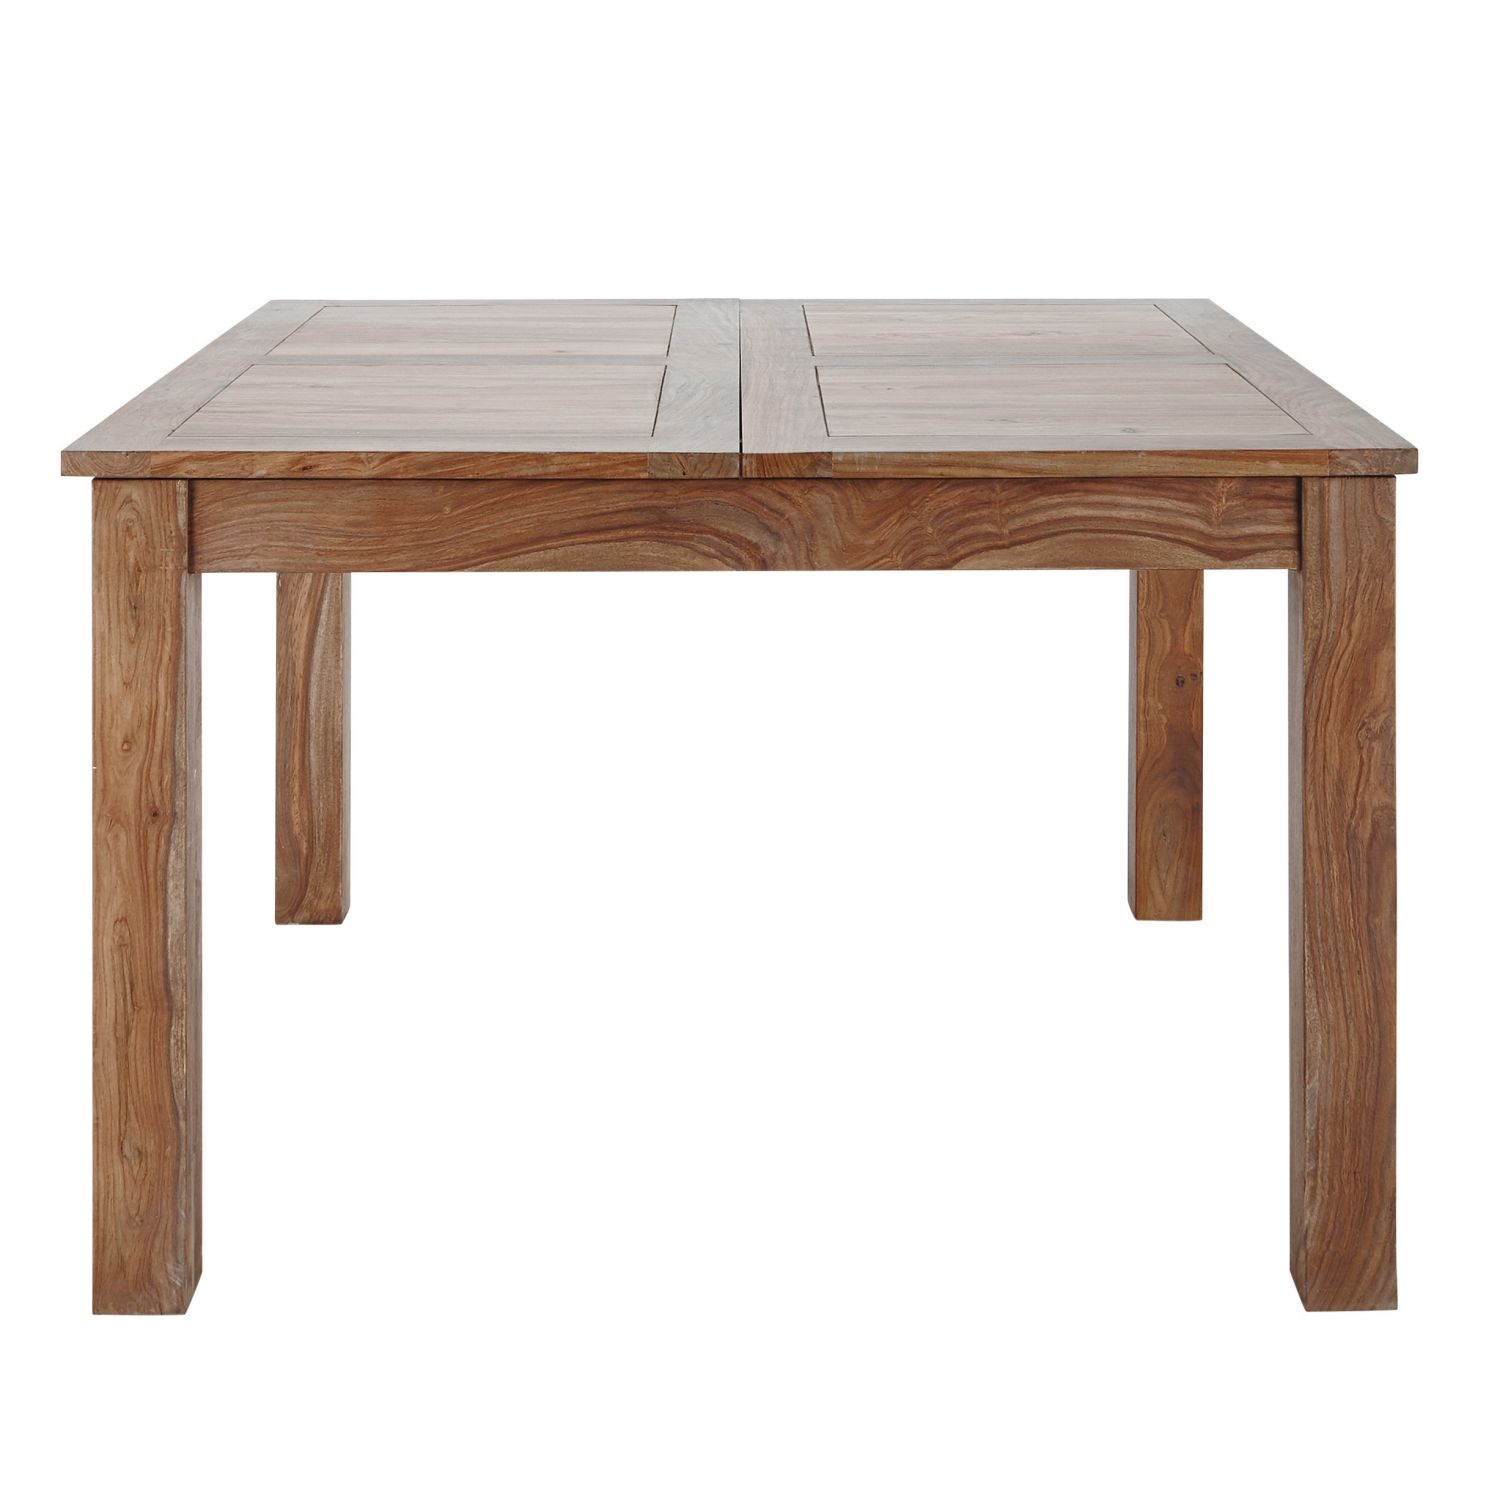 Maison Du Monde Esstisch Sheesham Wood Extendible 8-10 Seater Dining Table L130/190 ...